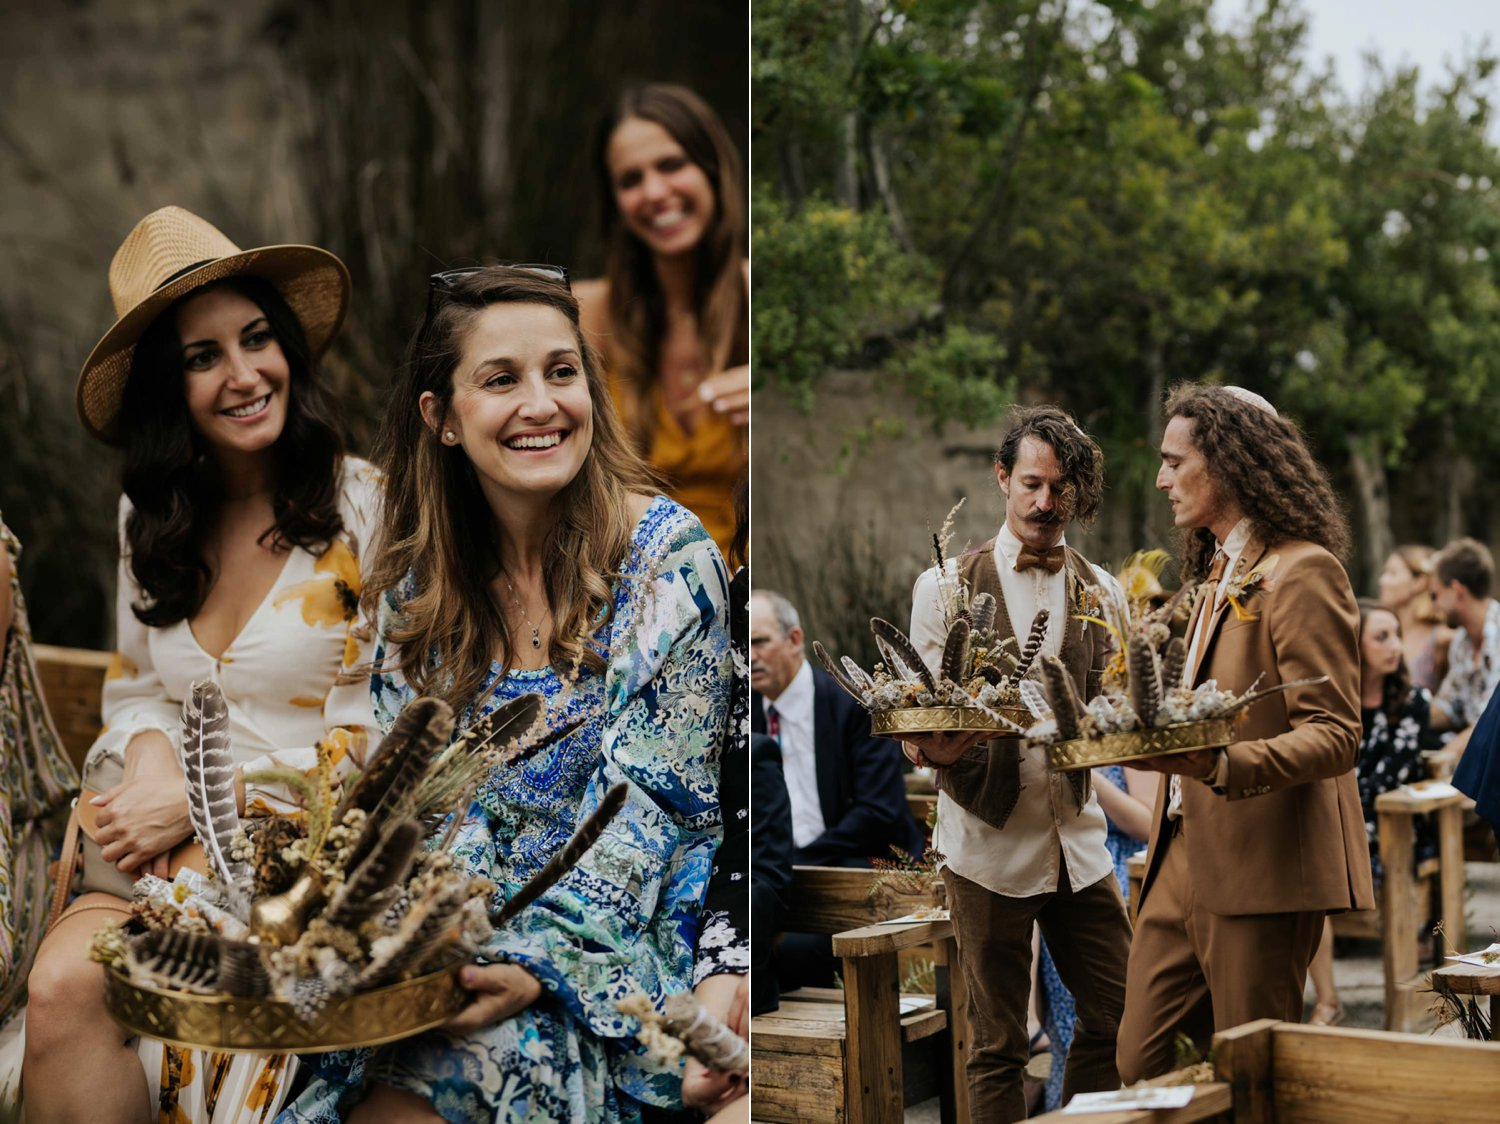 Untraditional sacred sage smudging ceremony at boho gypsy wedding